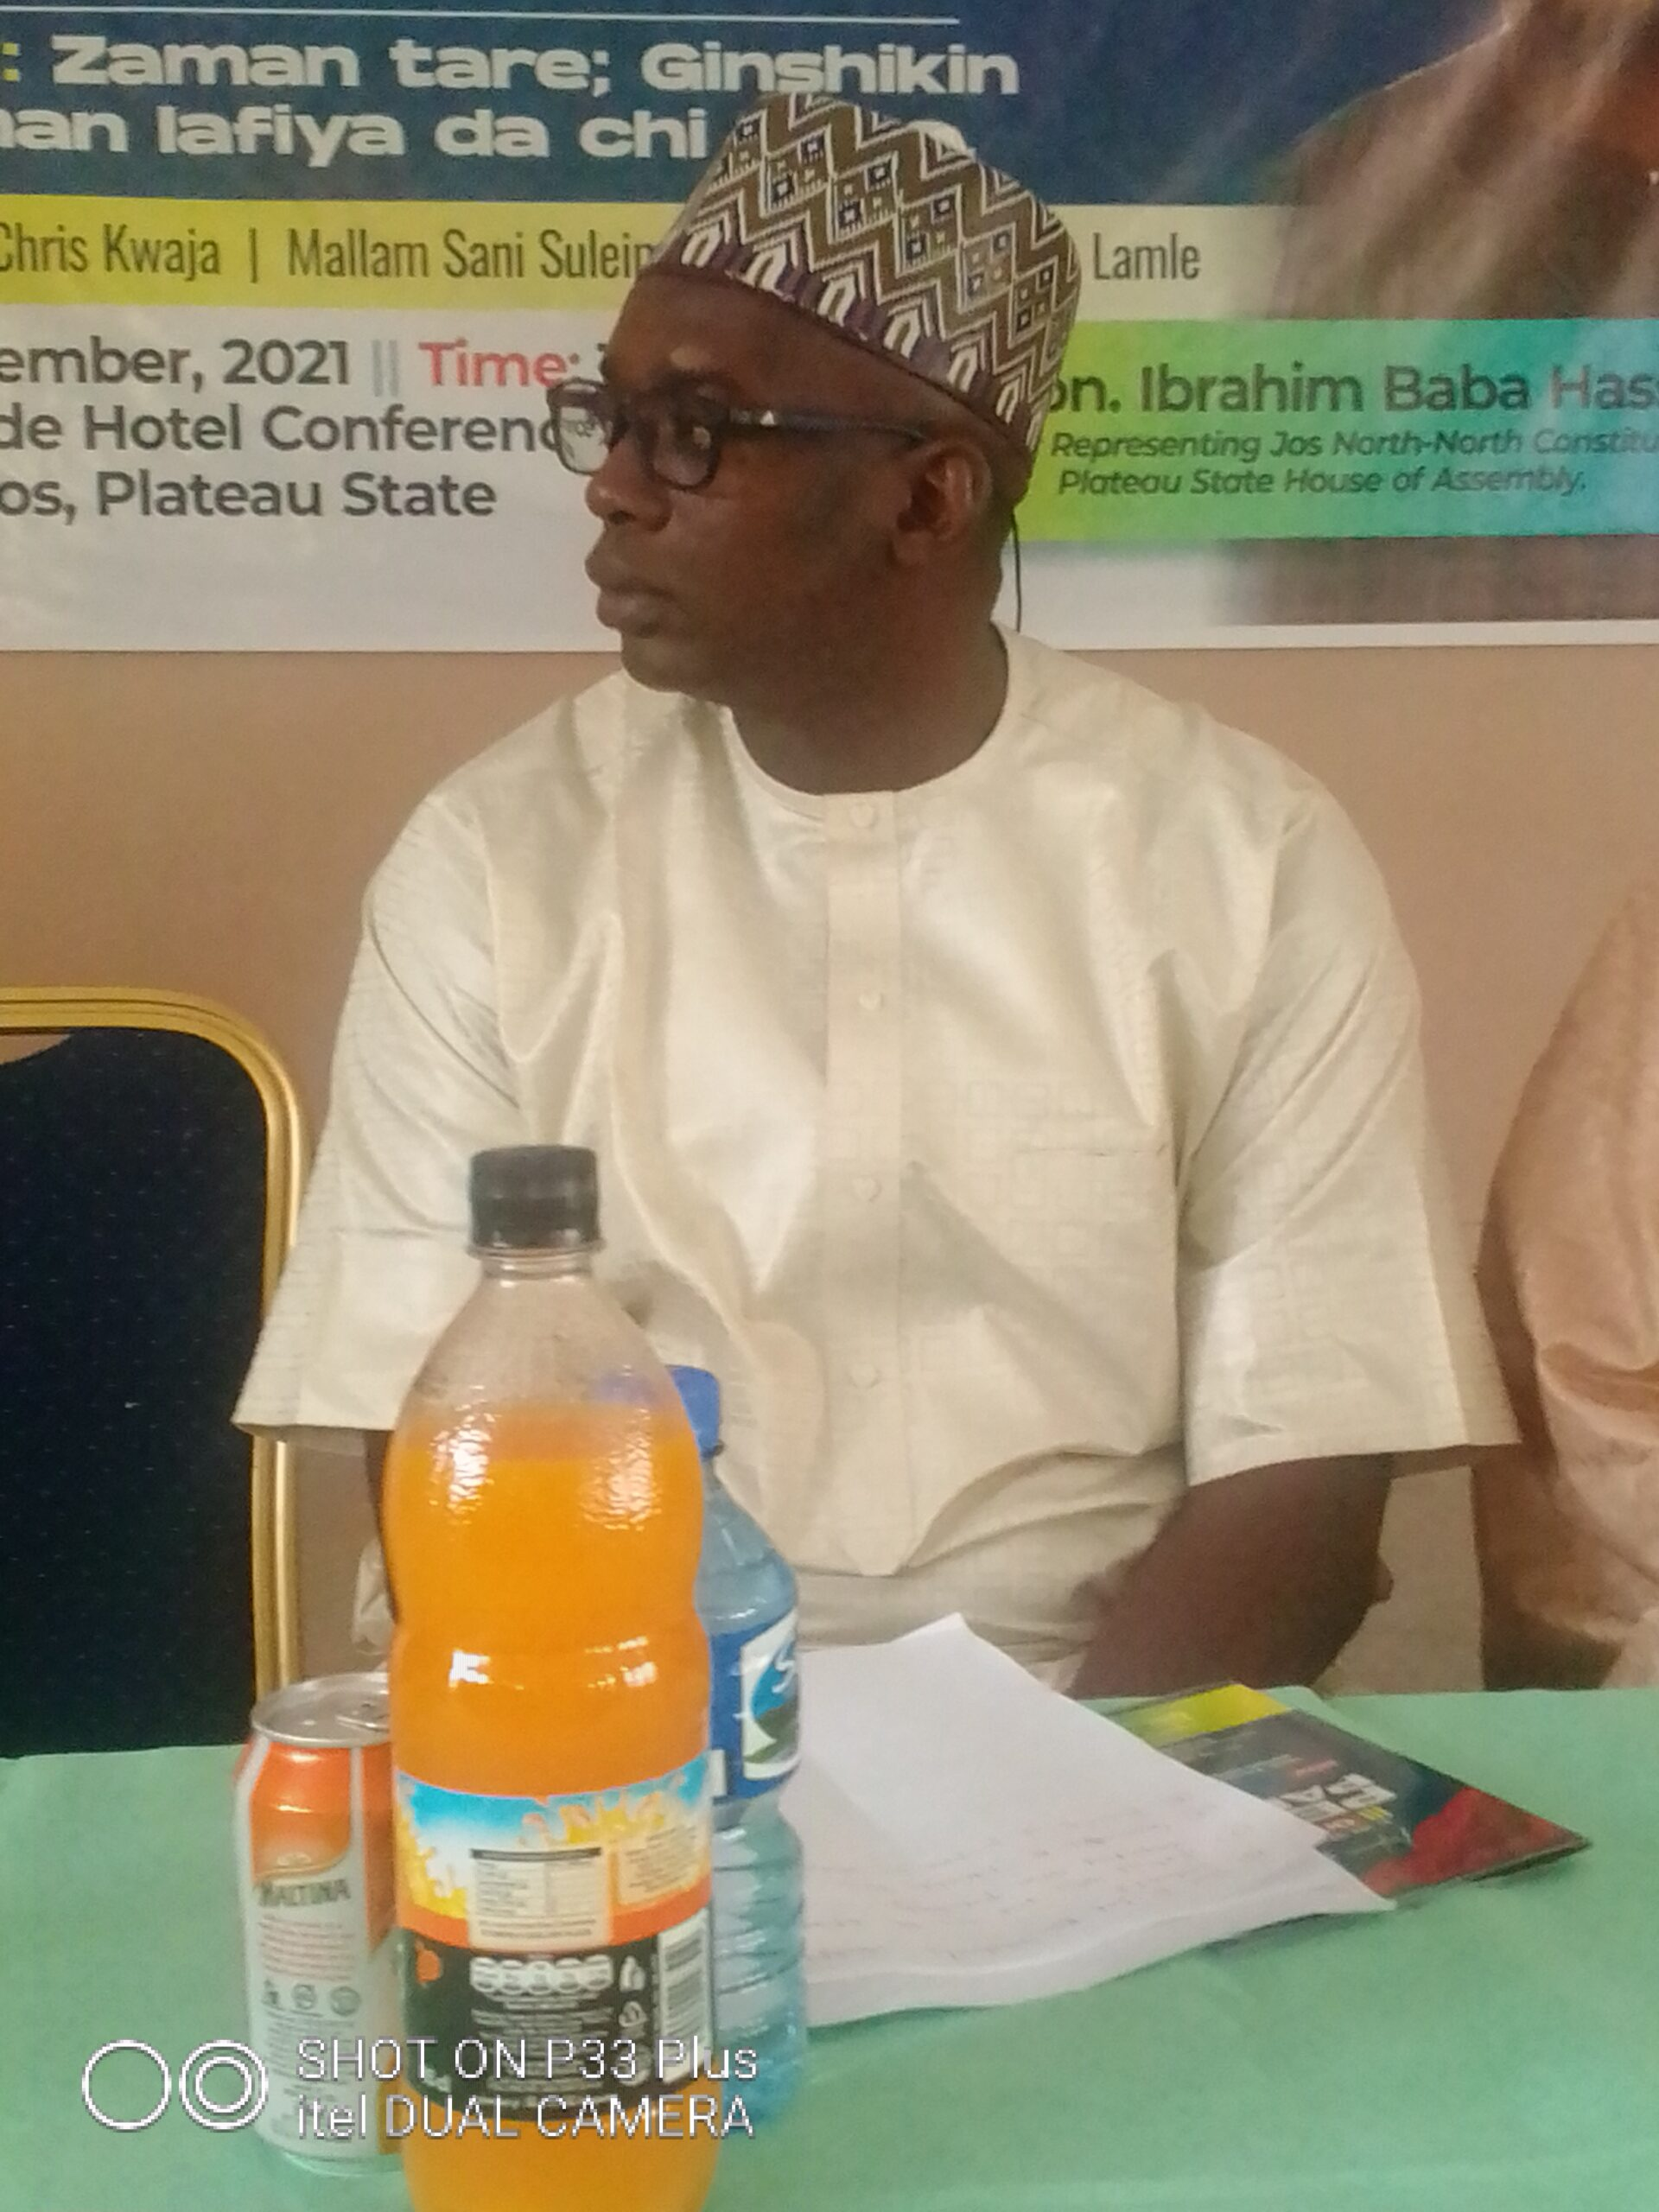 Rt. Hon. Baba Hassan organised Peace Parley with Traditional, Community and Religious leaders